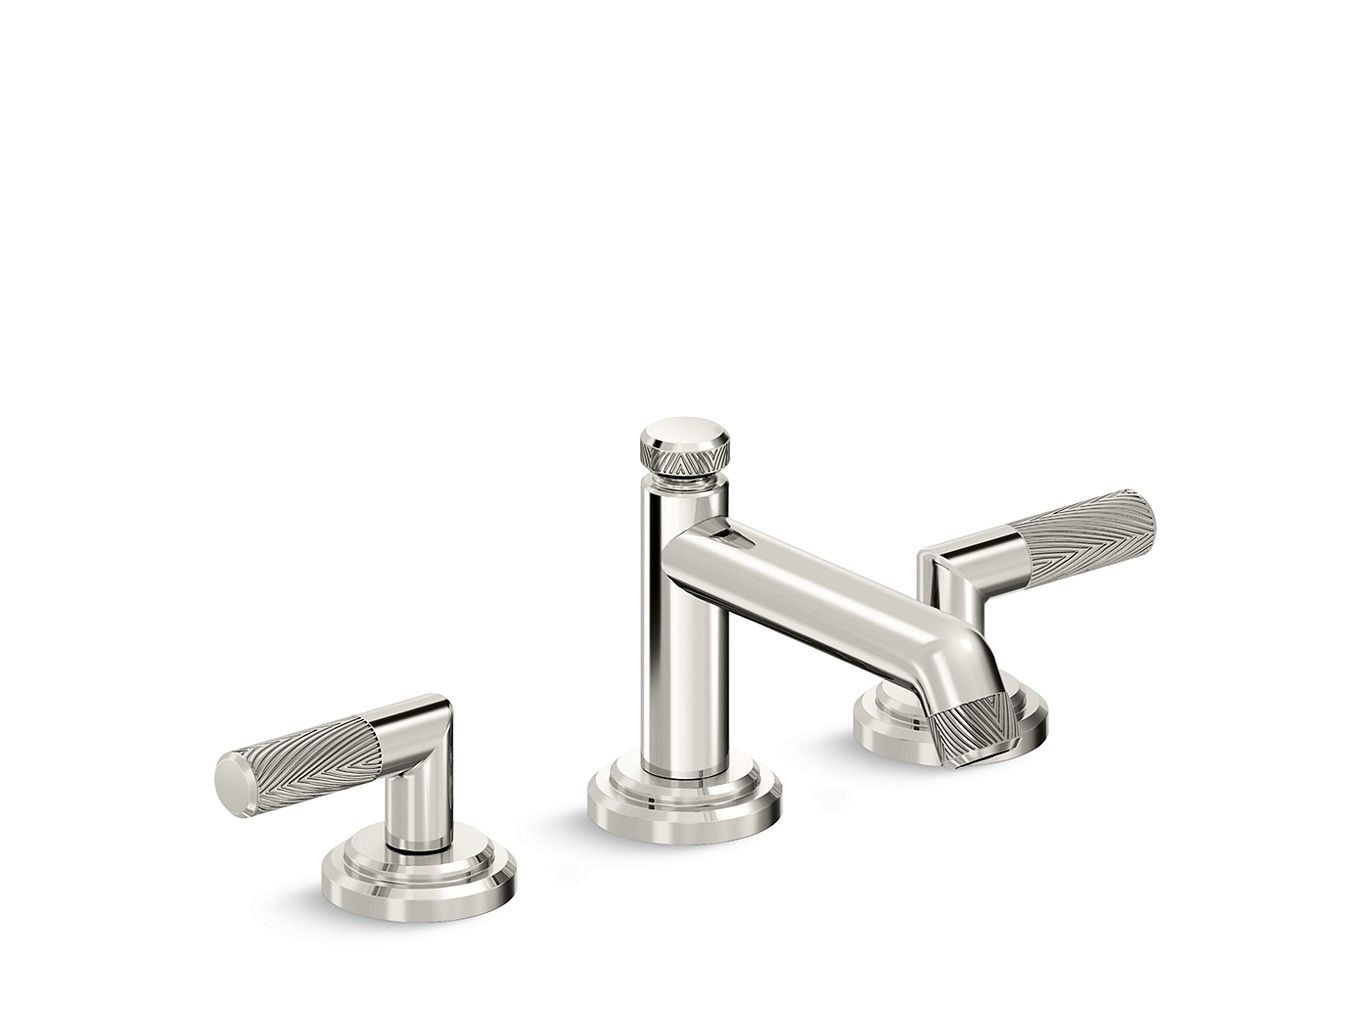 Complete your bathroom look with this artfully designed faucet by ...